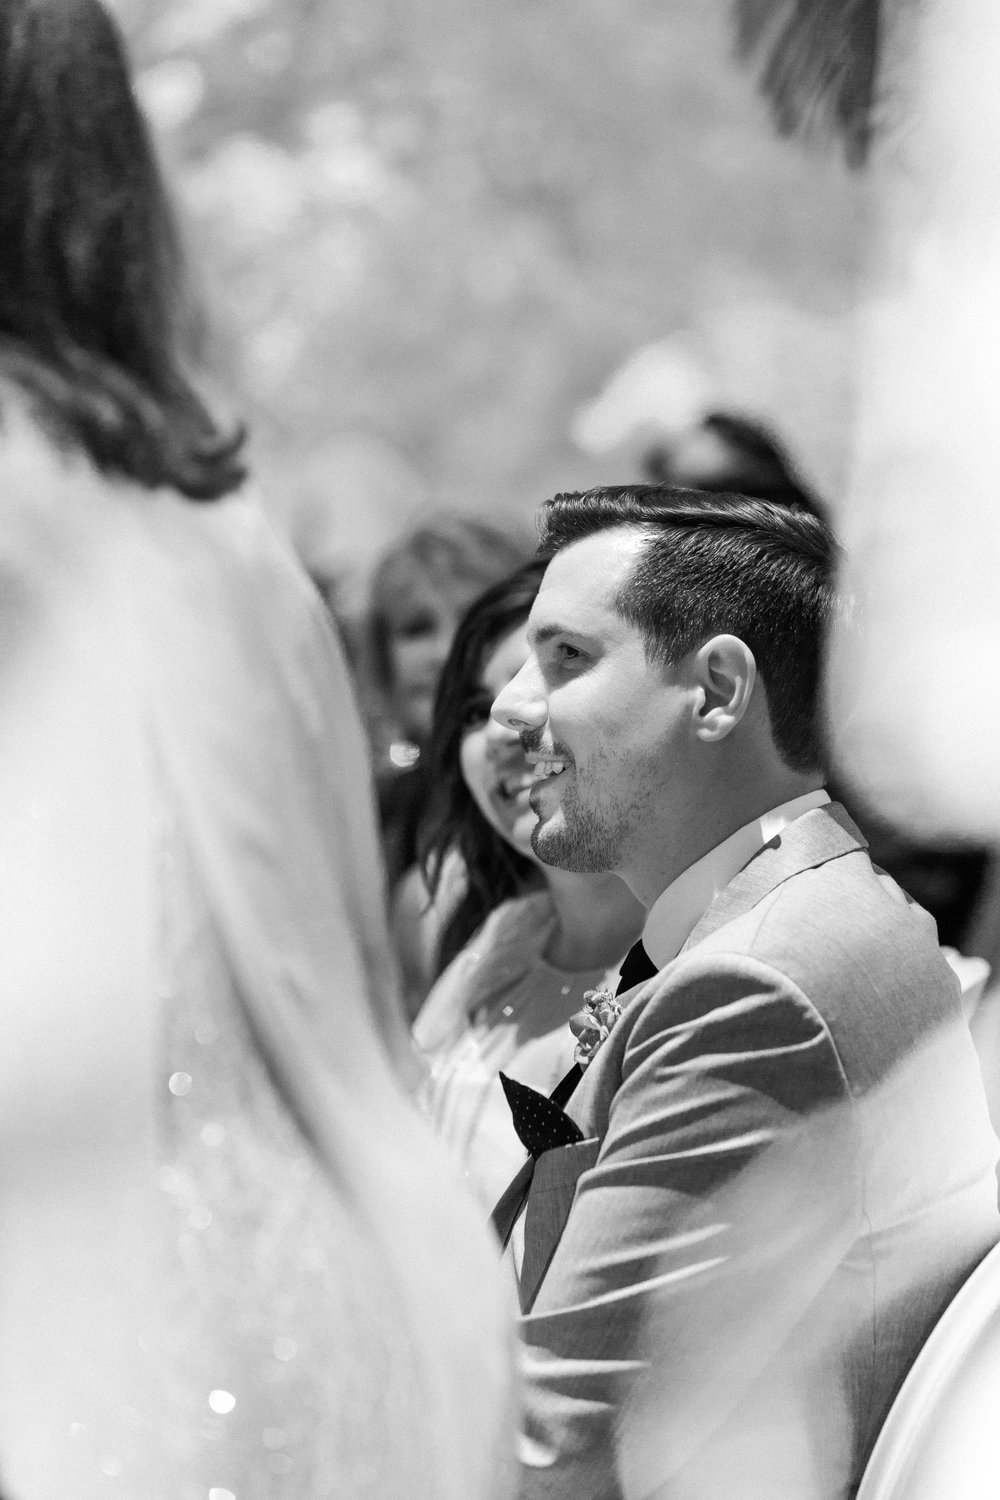 Christina-Nathan-Wedding-777.jpg